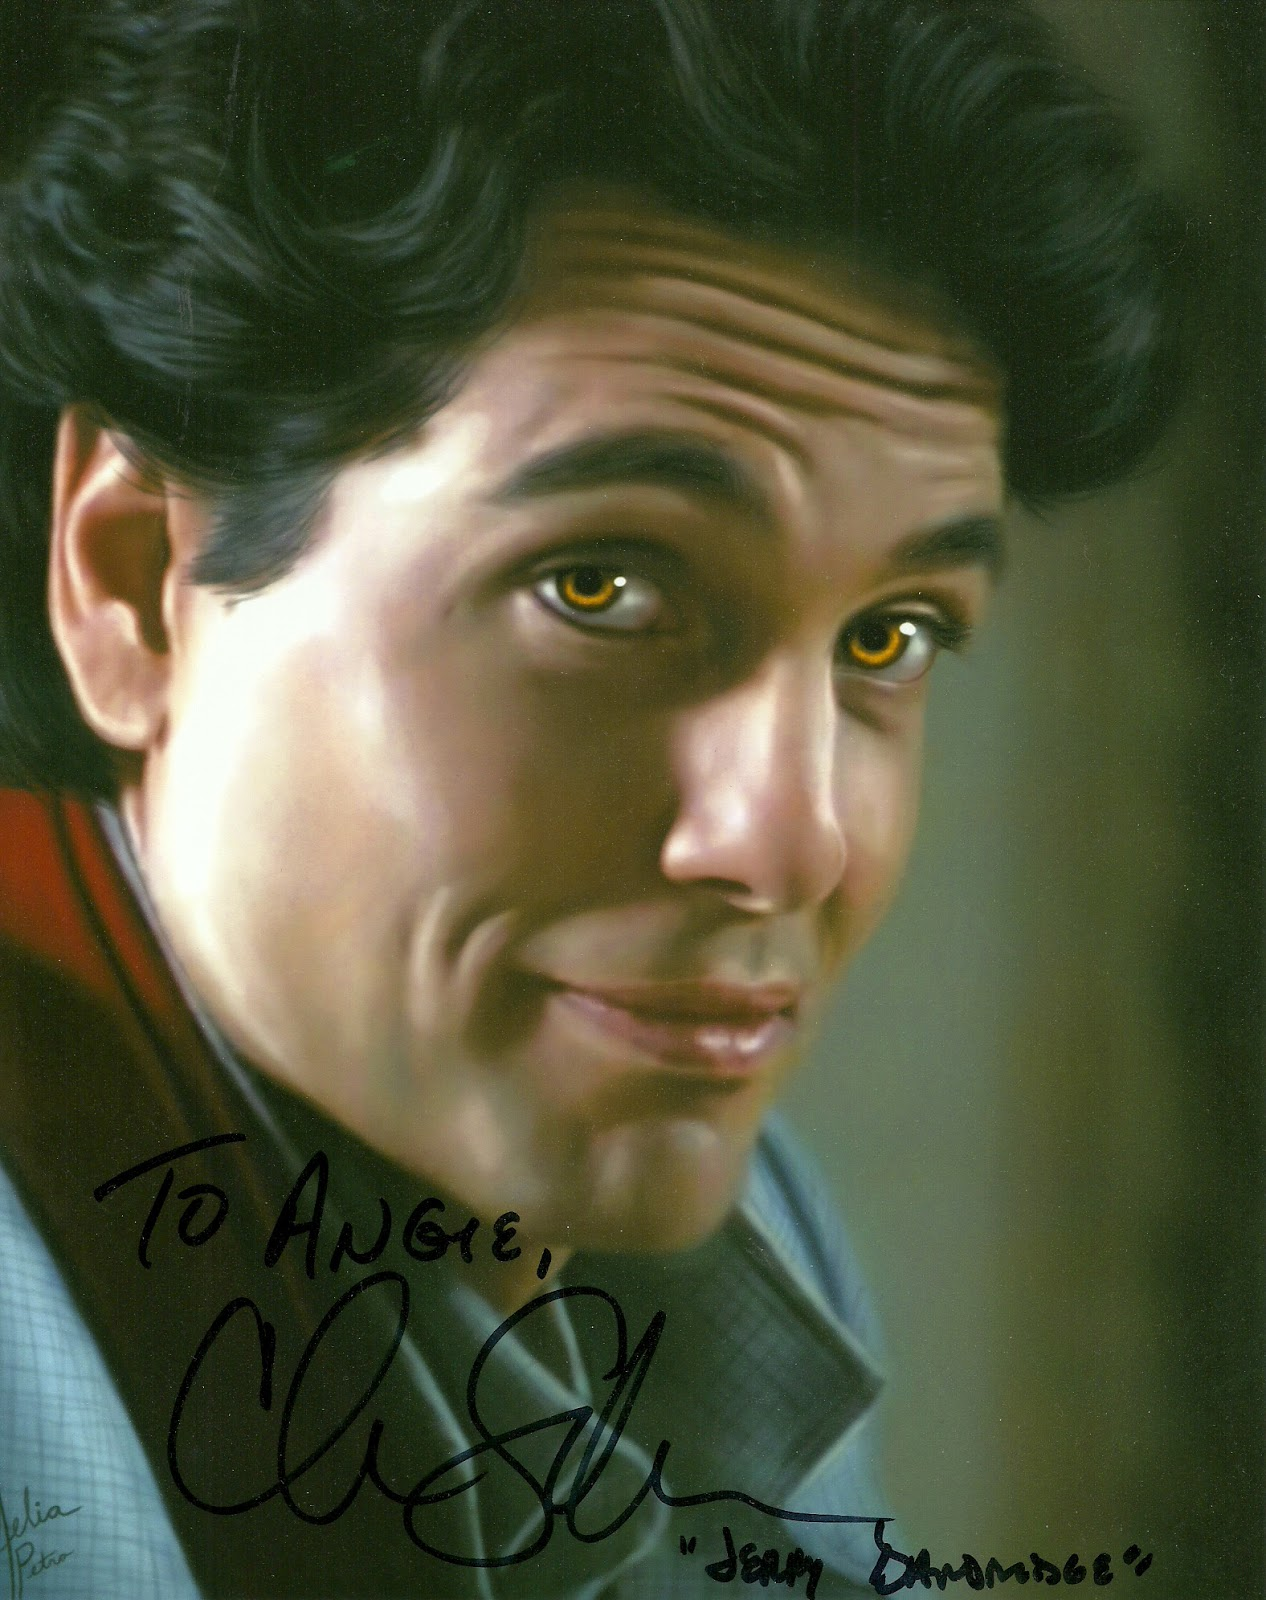 Angie's Autograph Successes: In-person: Chris Sarandon